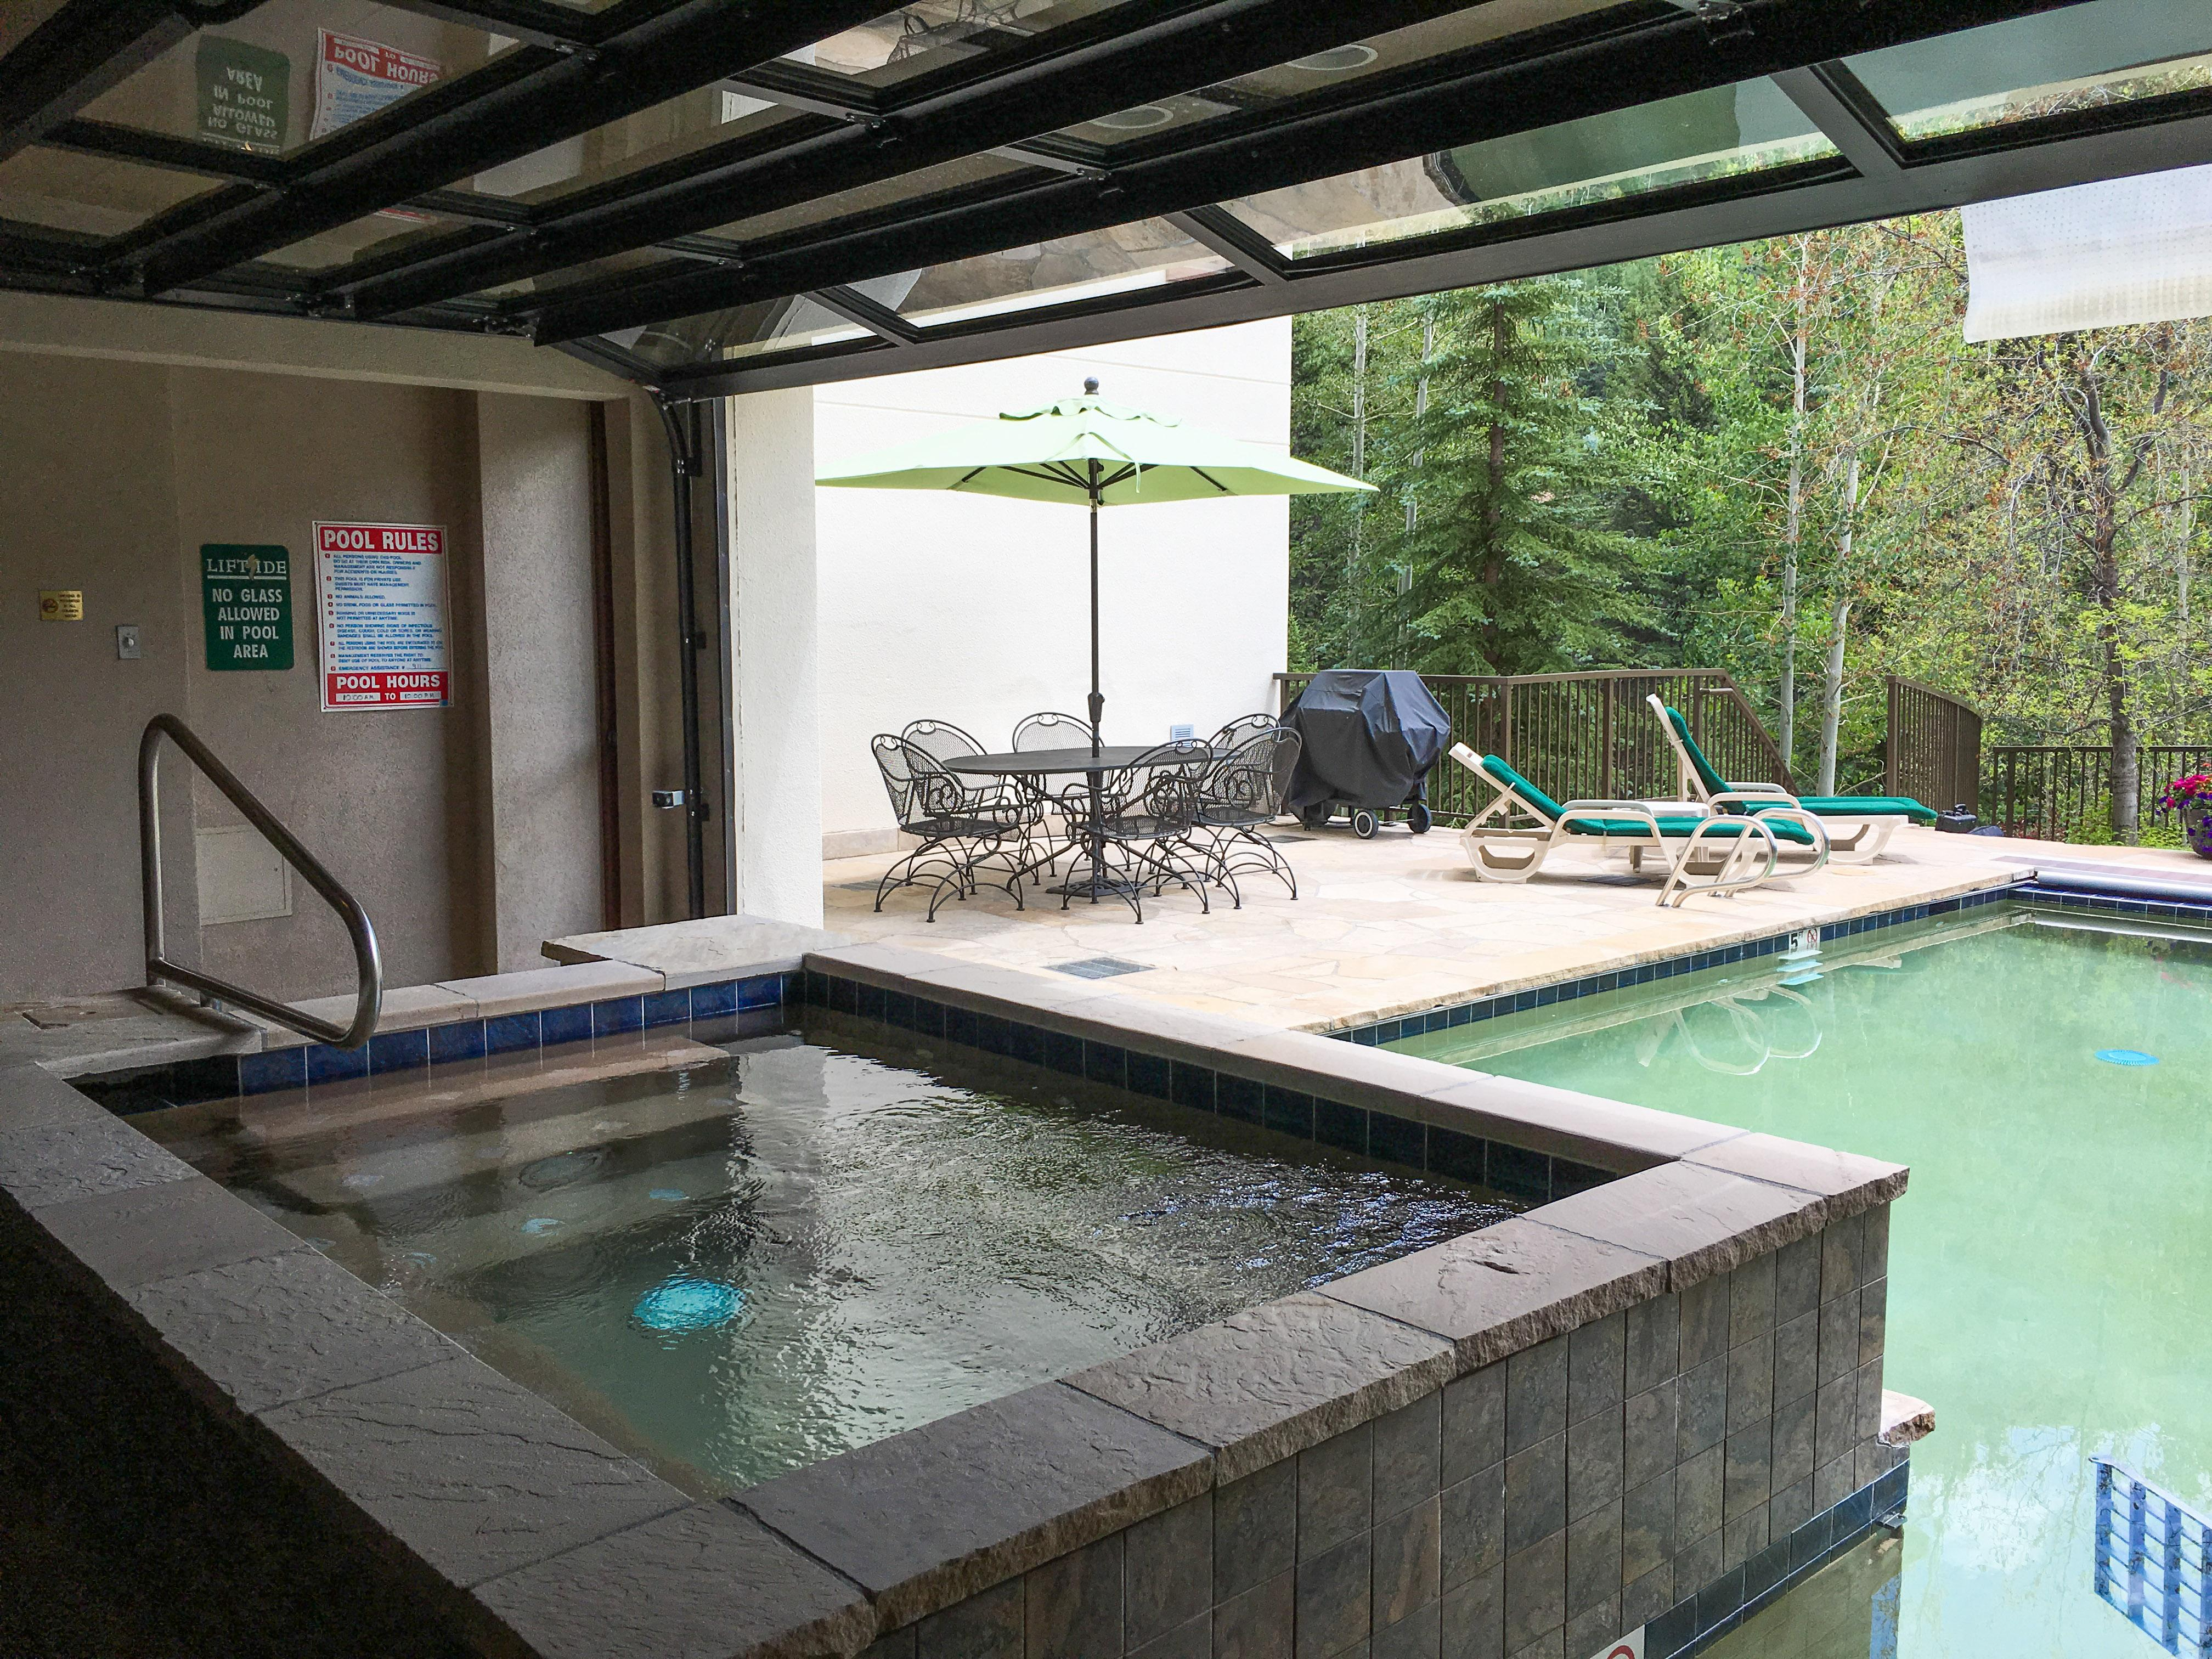 The Liftside condos have an upscale mountain lodge vibe and spectacular amenities, including multiple pools and hot tubs.